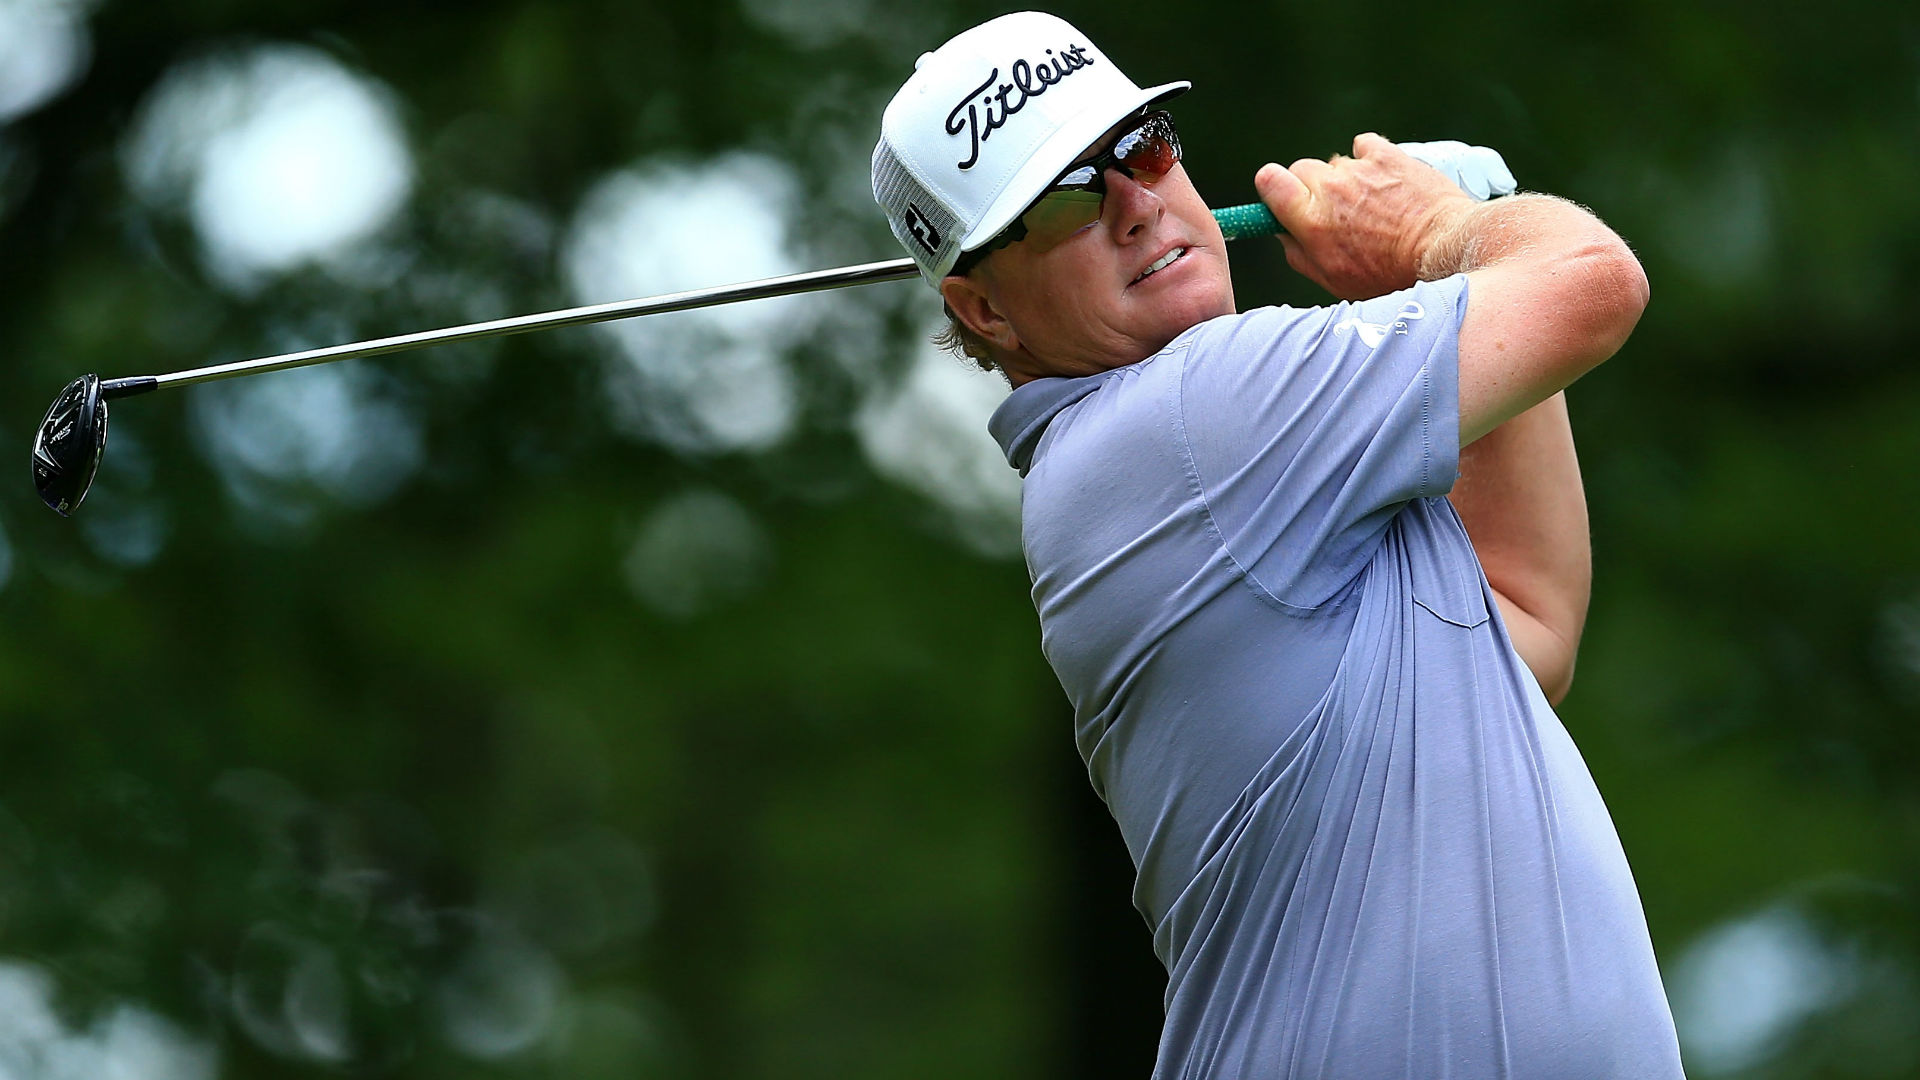 RBC Canadian Open 2017: Charley Hoffman Climbs to Top of Saturday Leaderboard